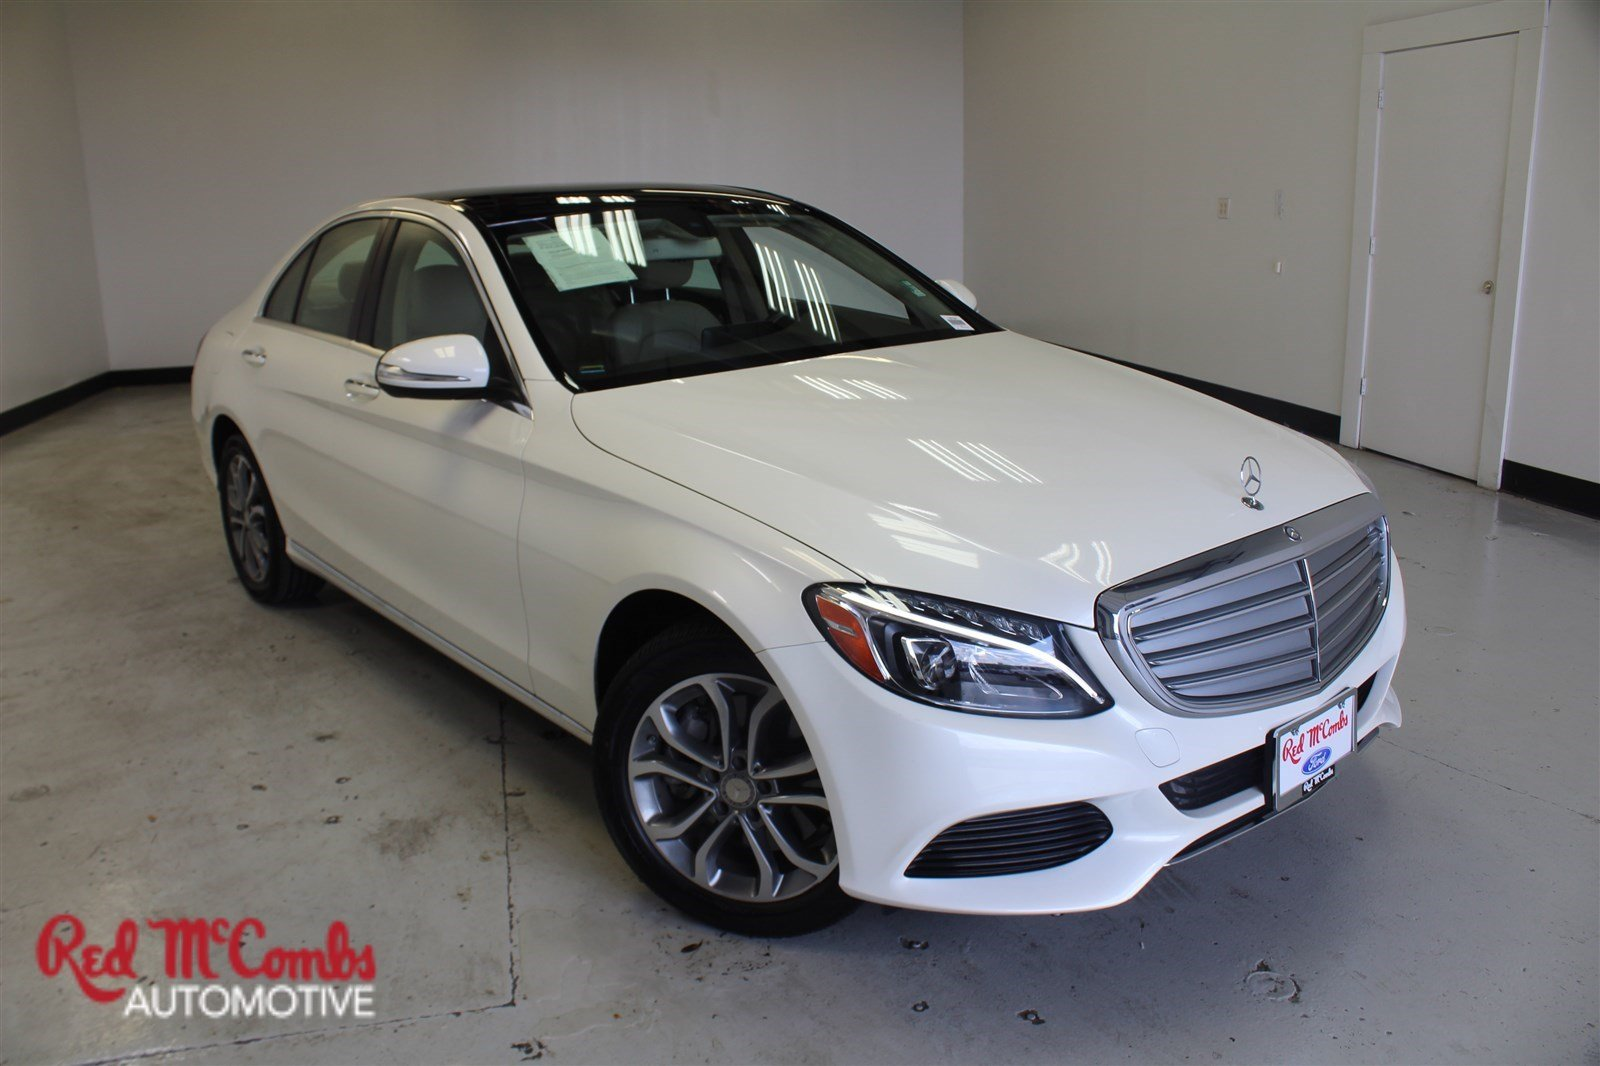 used carpages sale burlington class sunroof in dual c cars mercedes for ca navi benz ontario